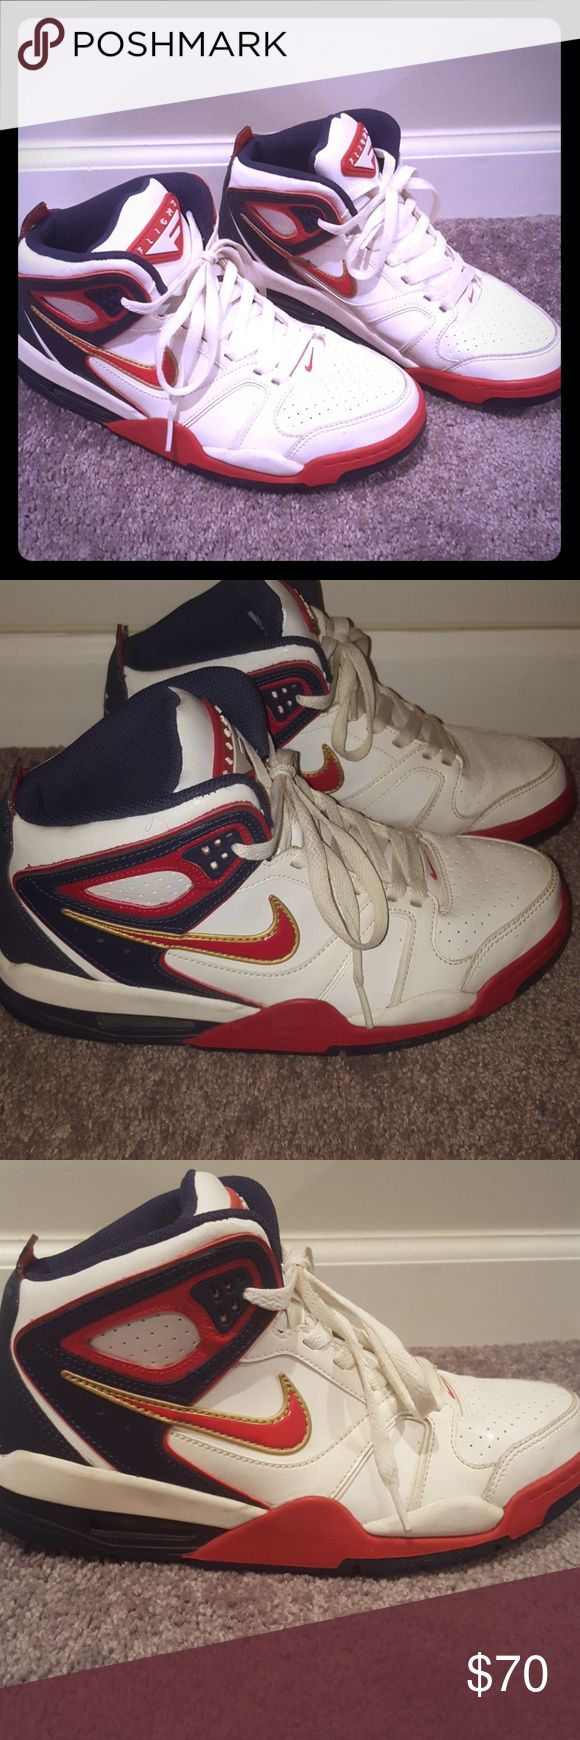 *Retro Nike Air Flight Falcon Olympic White , Red , Midnight Navy Olympic Falcon  flights ..Slight scuff on sole see pictures otherwise they are in  great condition . Nike Shoes Athletic Shoes